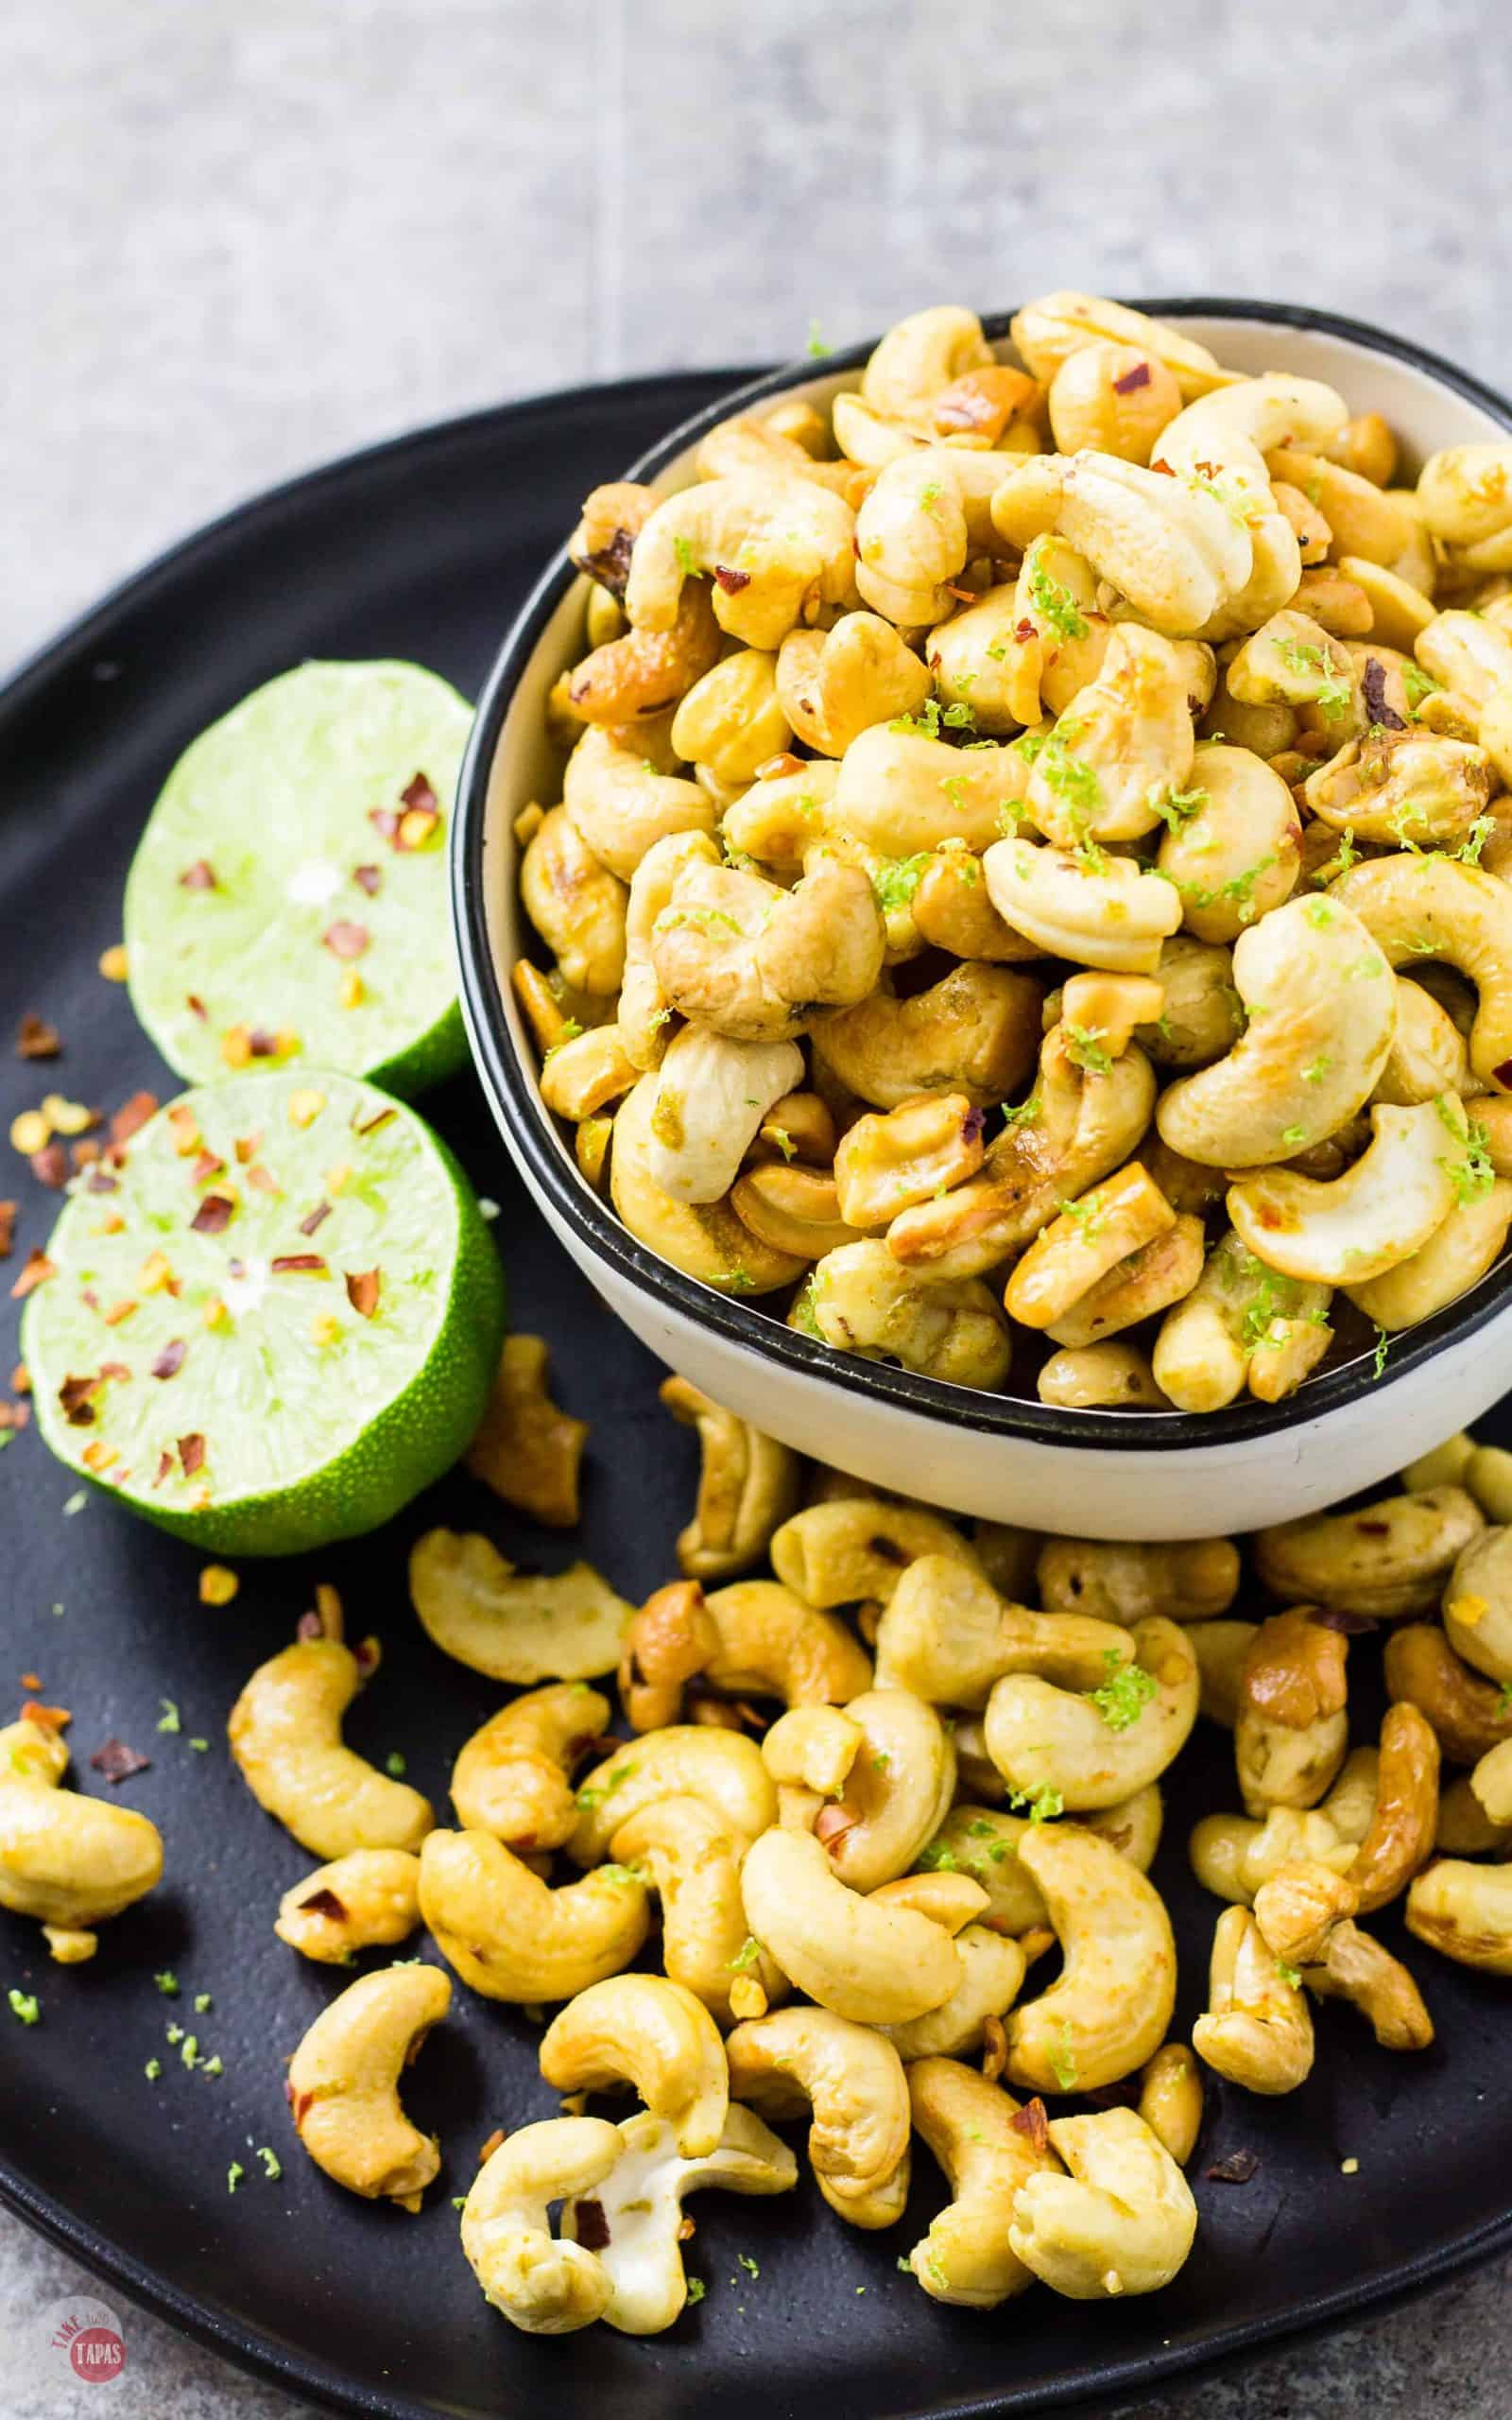 Zesty Chili Lime Cashews – Spicy Nuts